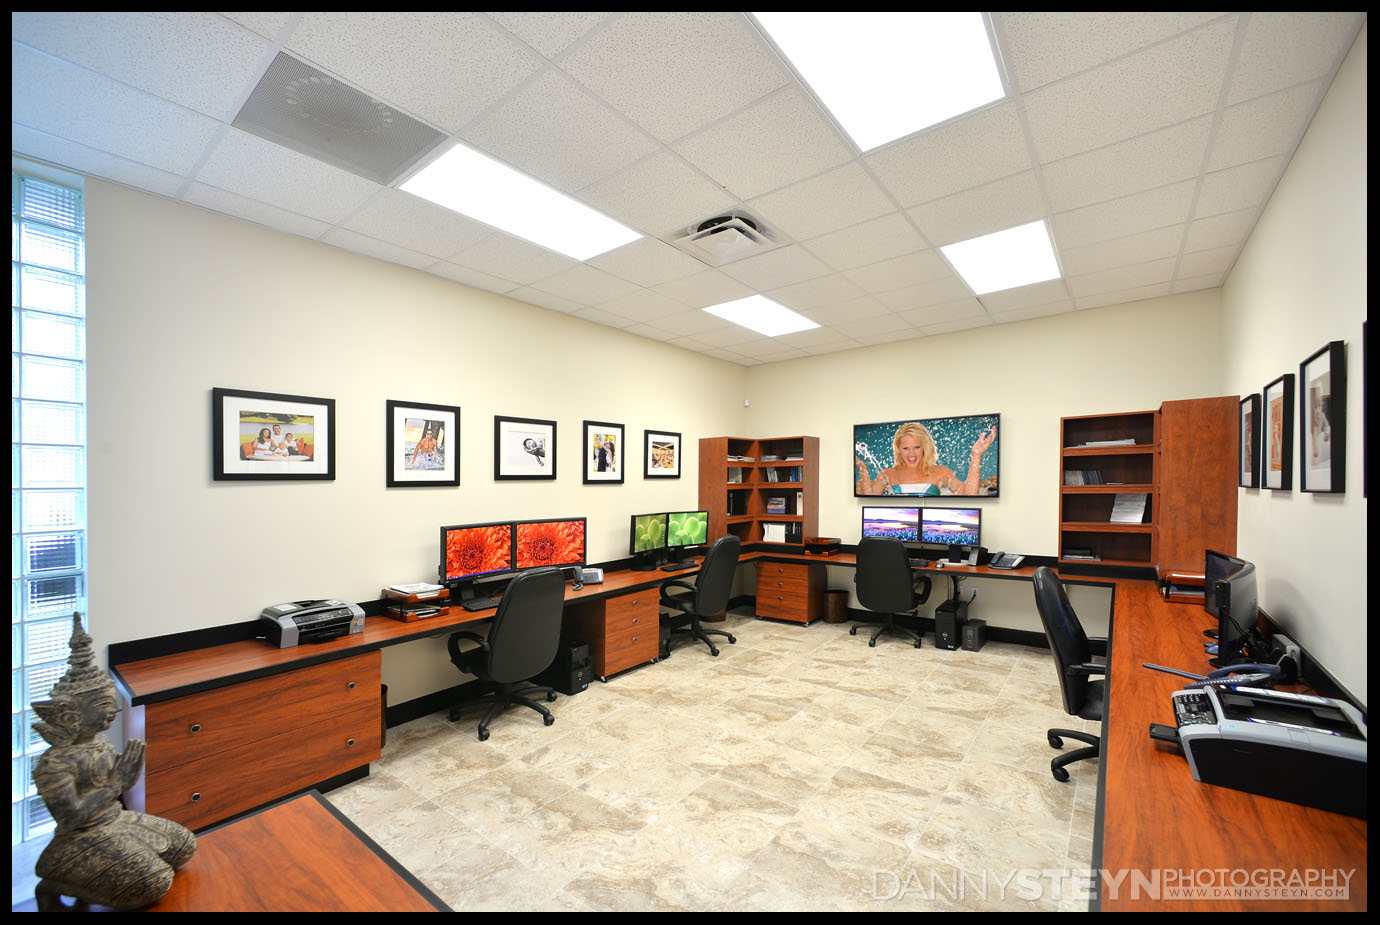 Danny Steyn Photography Studios - Editing Offices